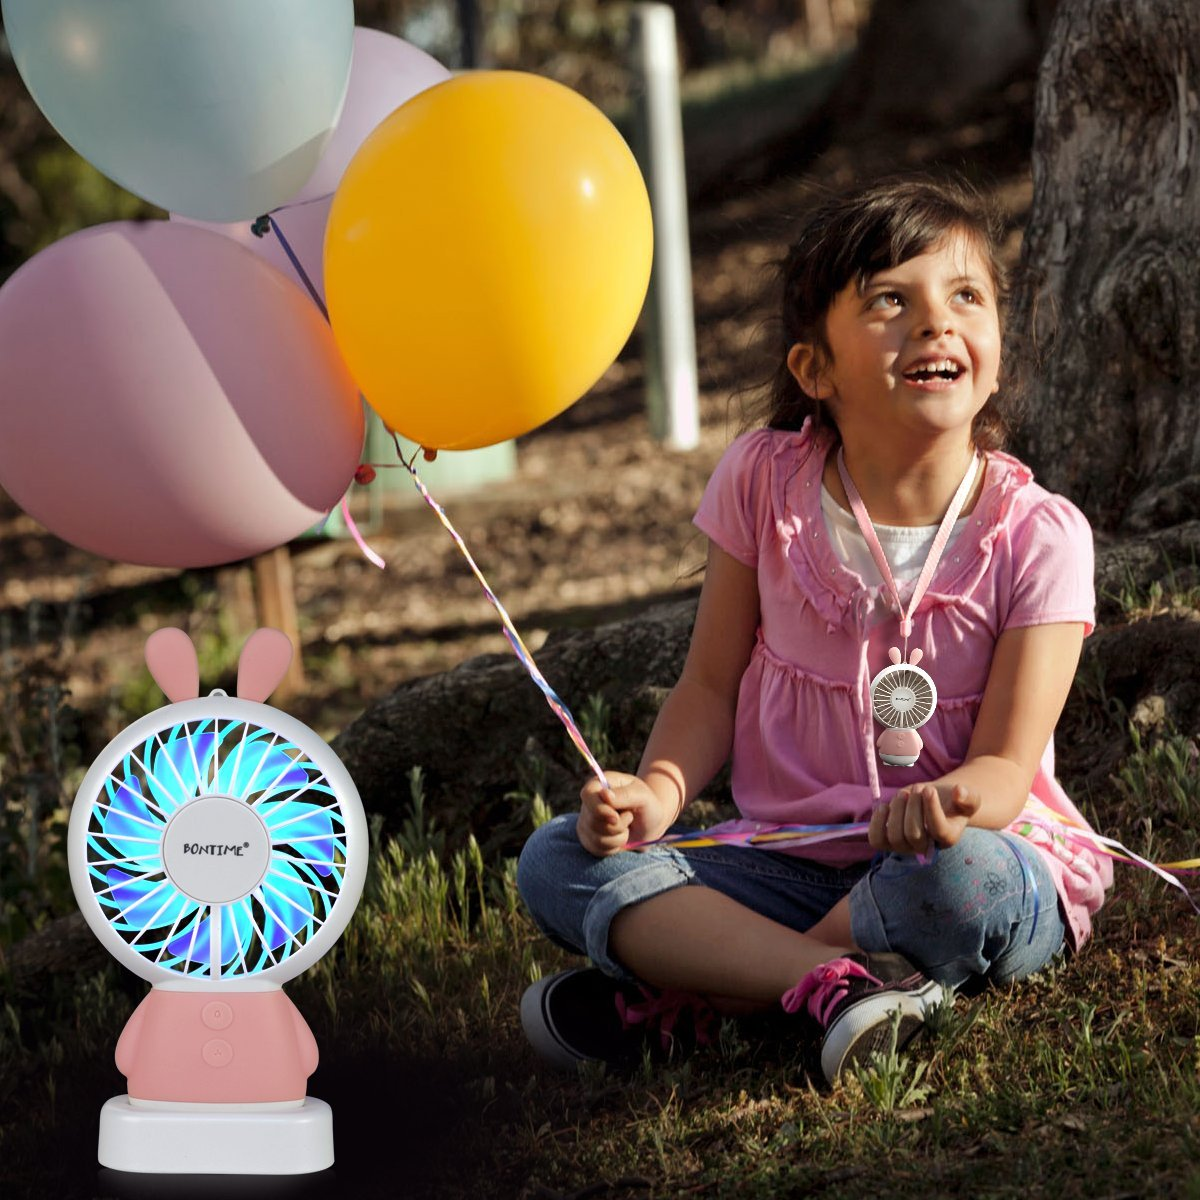 BONTIME Portable Fan - Mini Hand held Fan, Rechargeable USB Fan with Colorful Night Light, 2 Speeds, Cooling for Traveling, Fishing, Camping by BONTIME (Image #8)